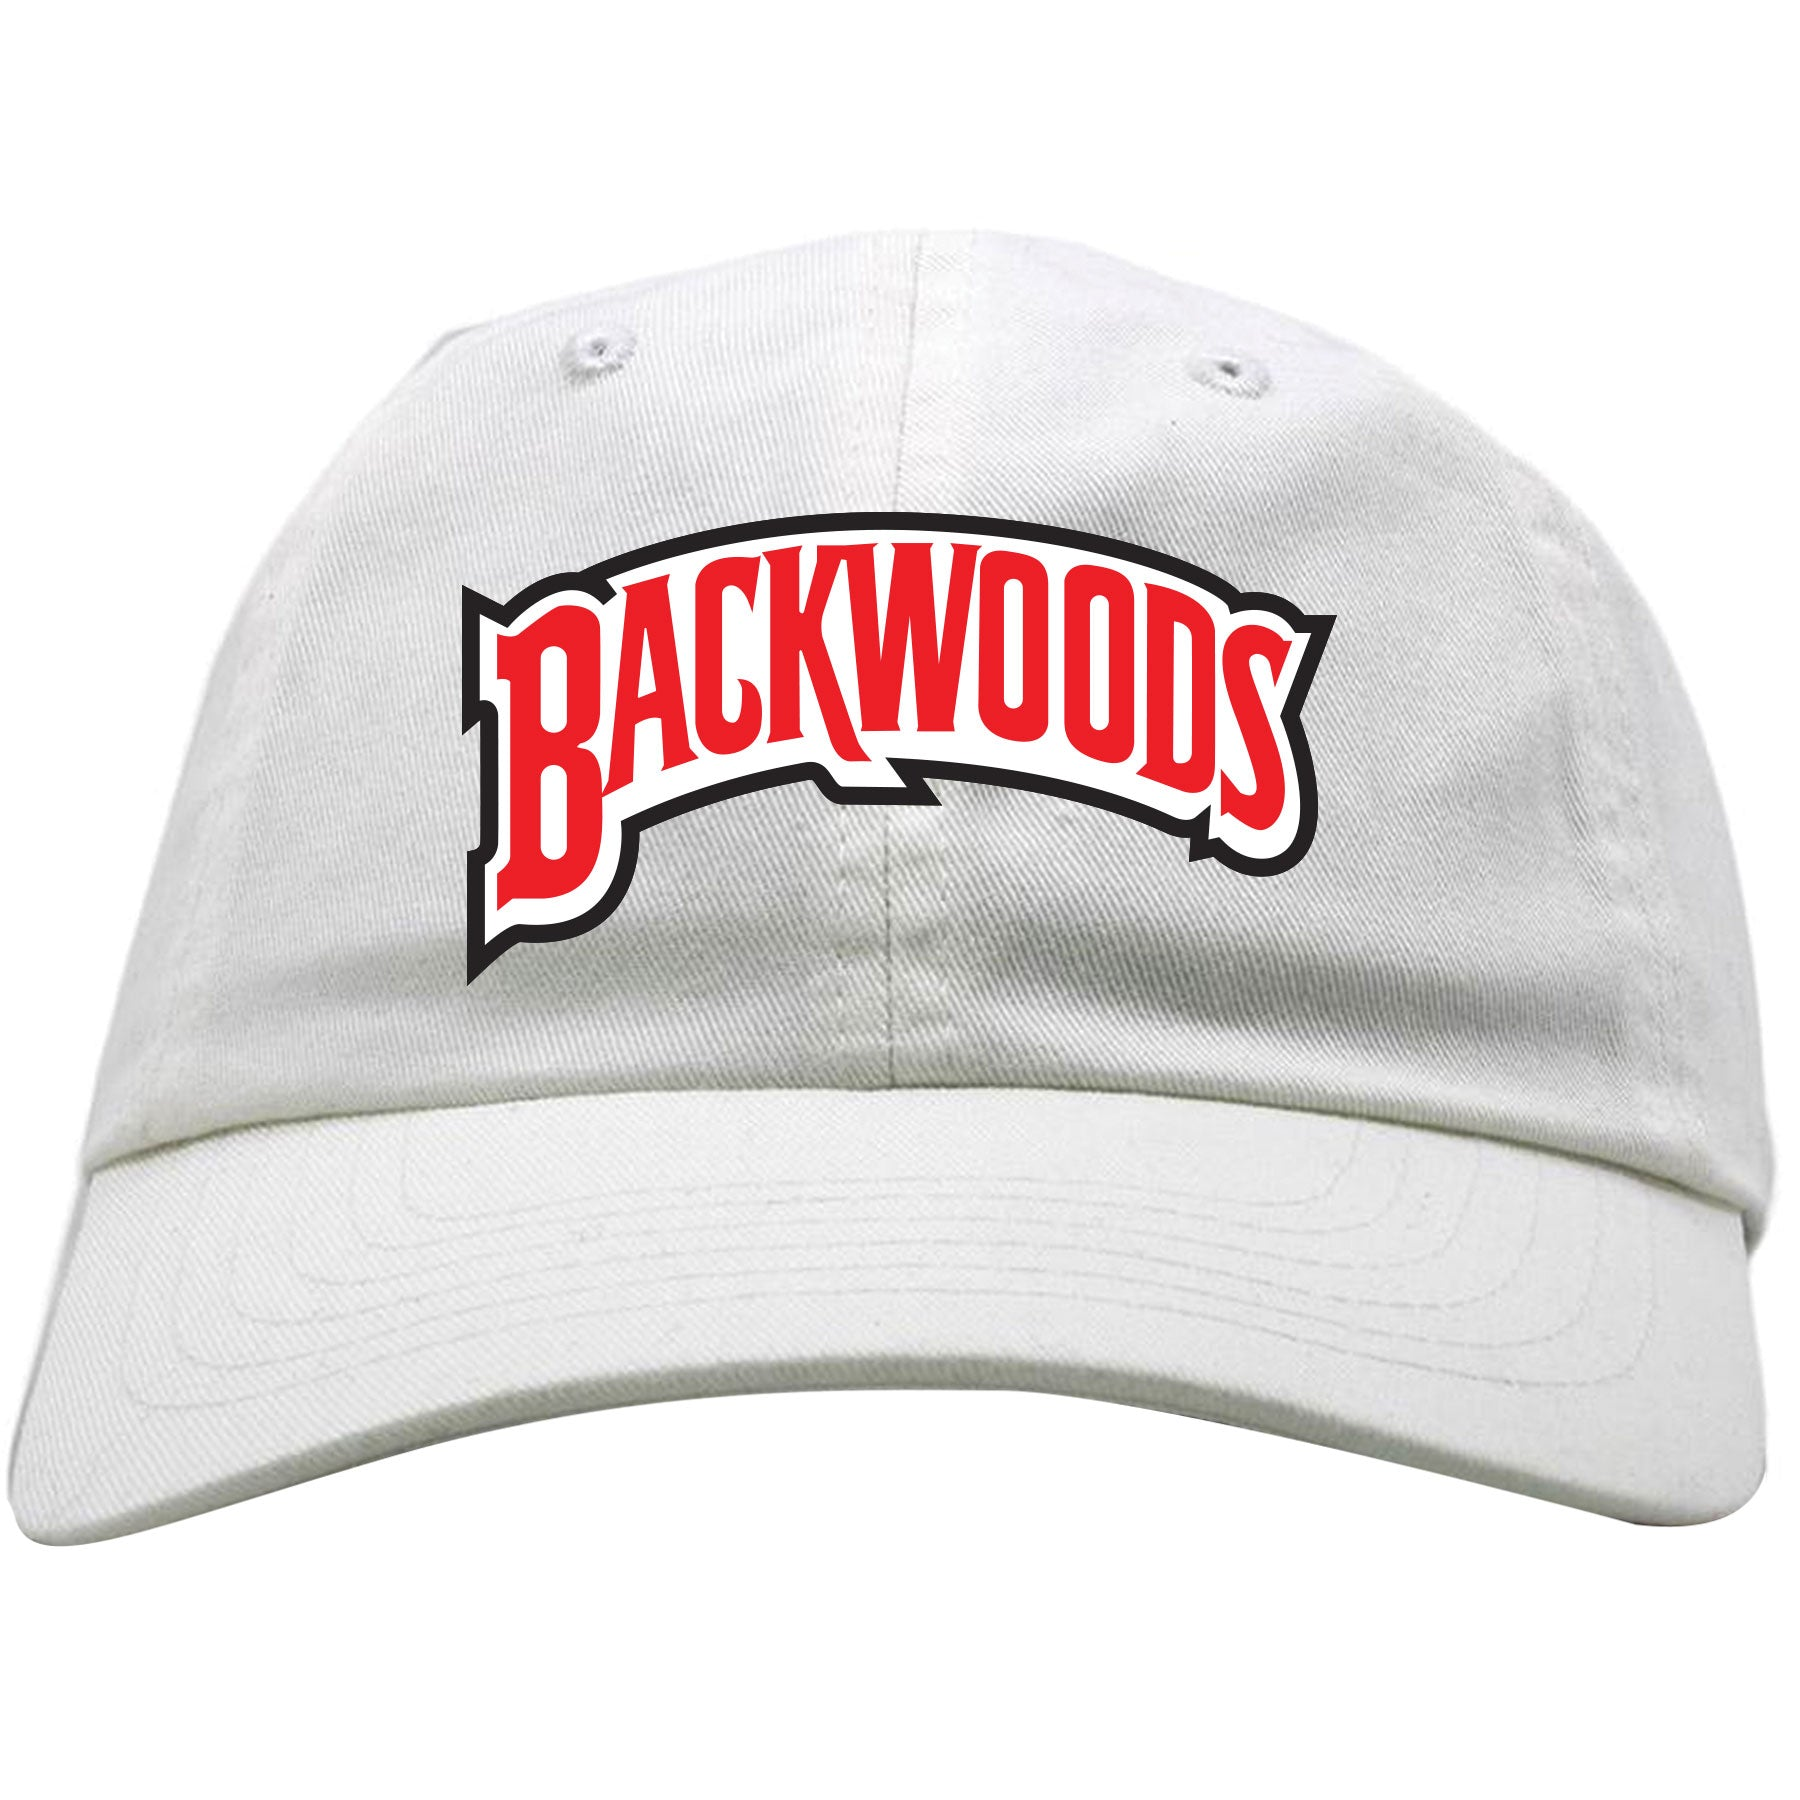 0f6e1c3f0cd Embroidered on the front of the white Backwoods Russian Cream adjustable dad  hat is the Backwoods